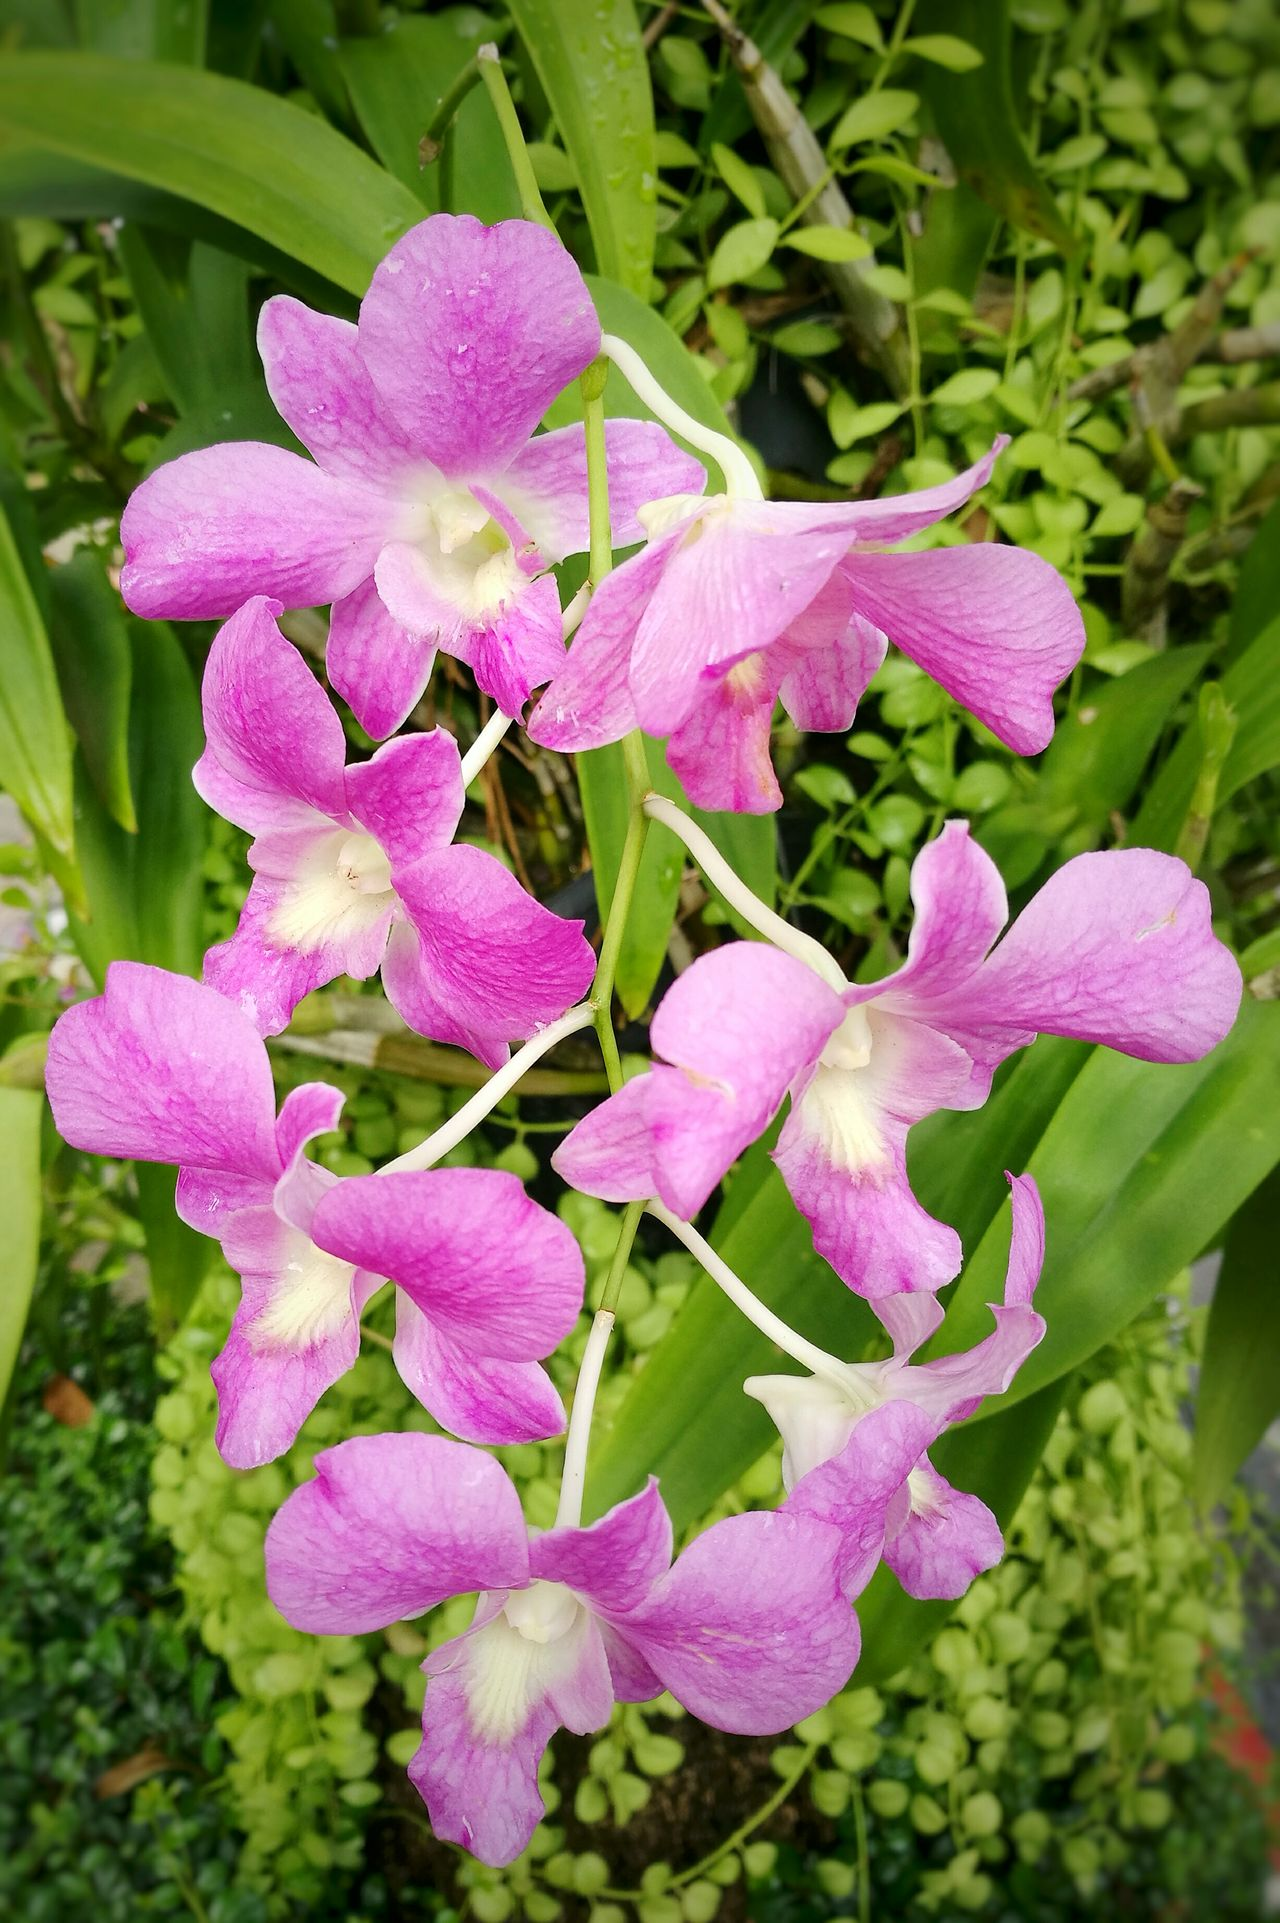 Orchid. Orchids Orchid Orchid Flower Orchid Blossoms Orchidslover Orchids Garden Orchids Collection Purple Flower Purple Flowers Flower Collection Flowers, Nature And Beauty Flowerphotography